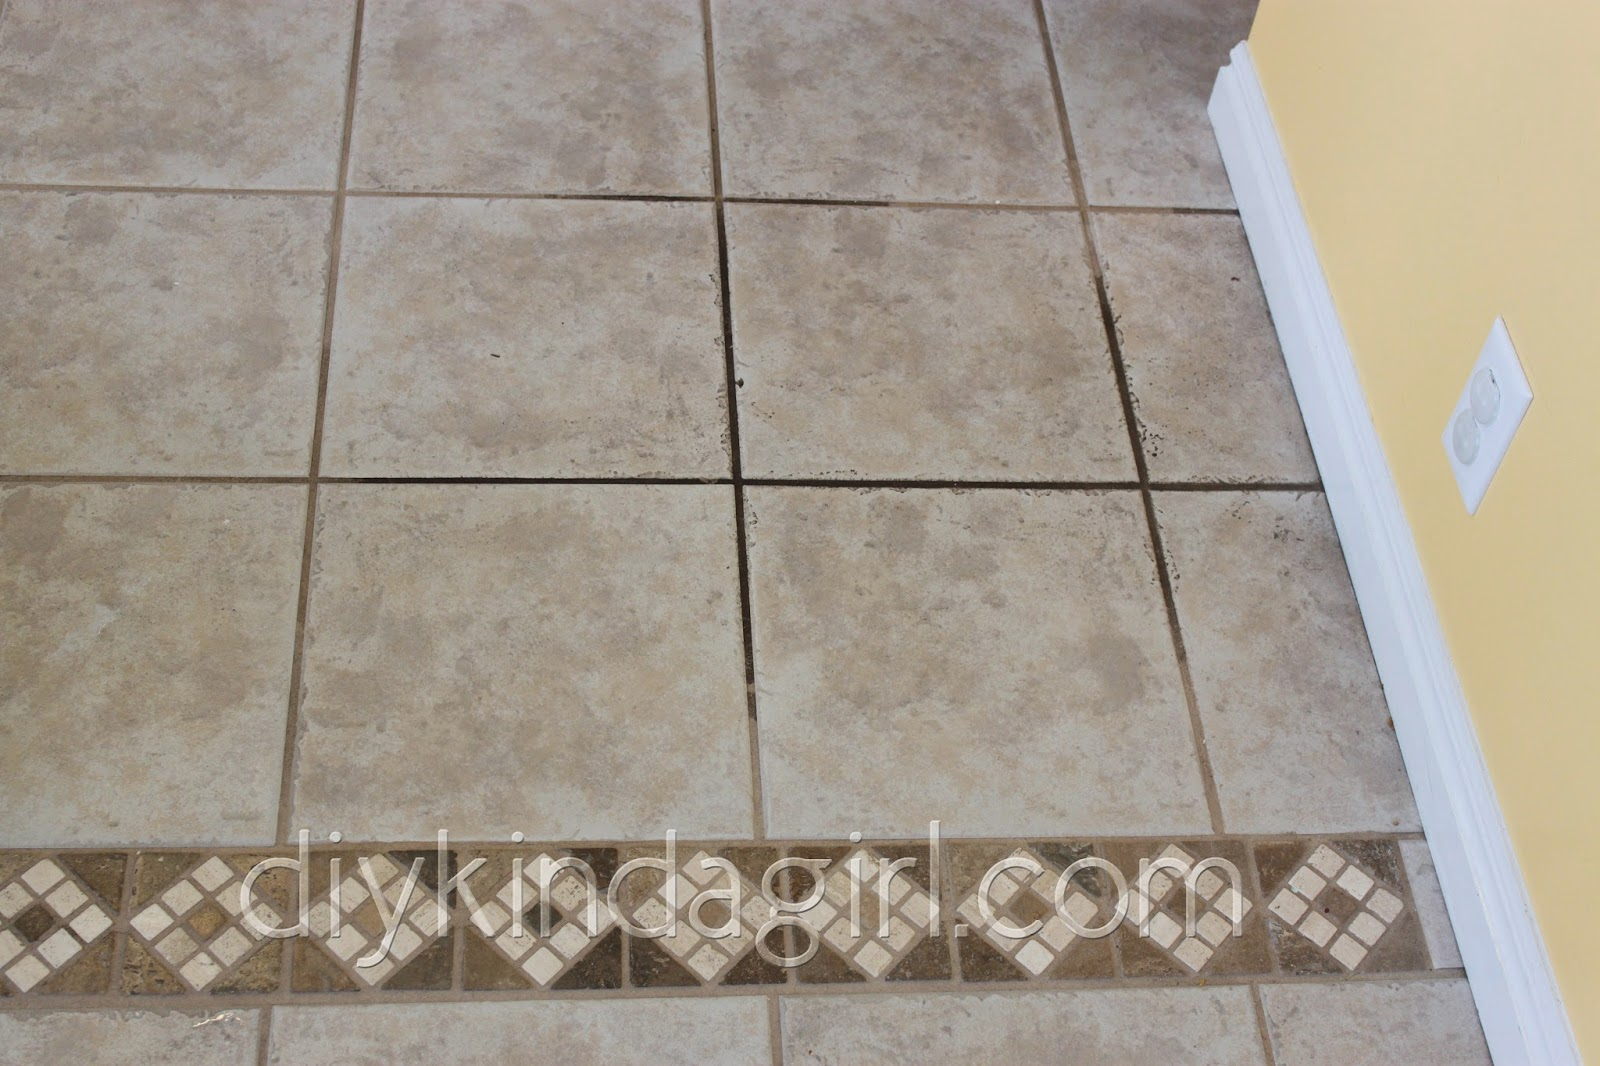 How to clean floor tile grout with oxiclean